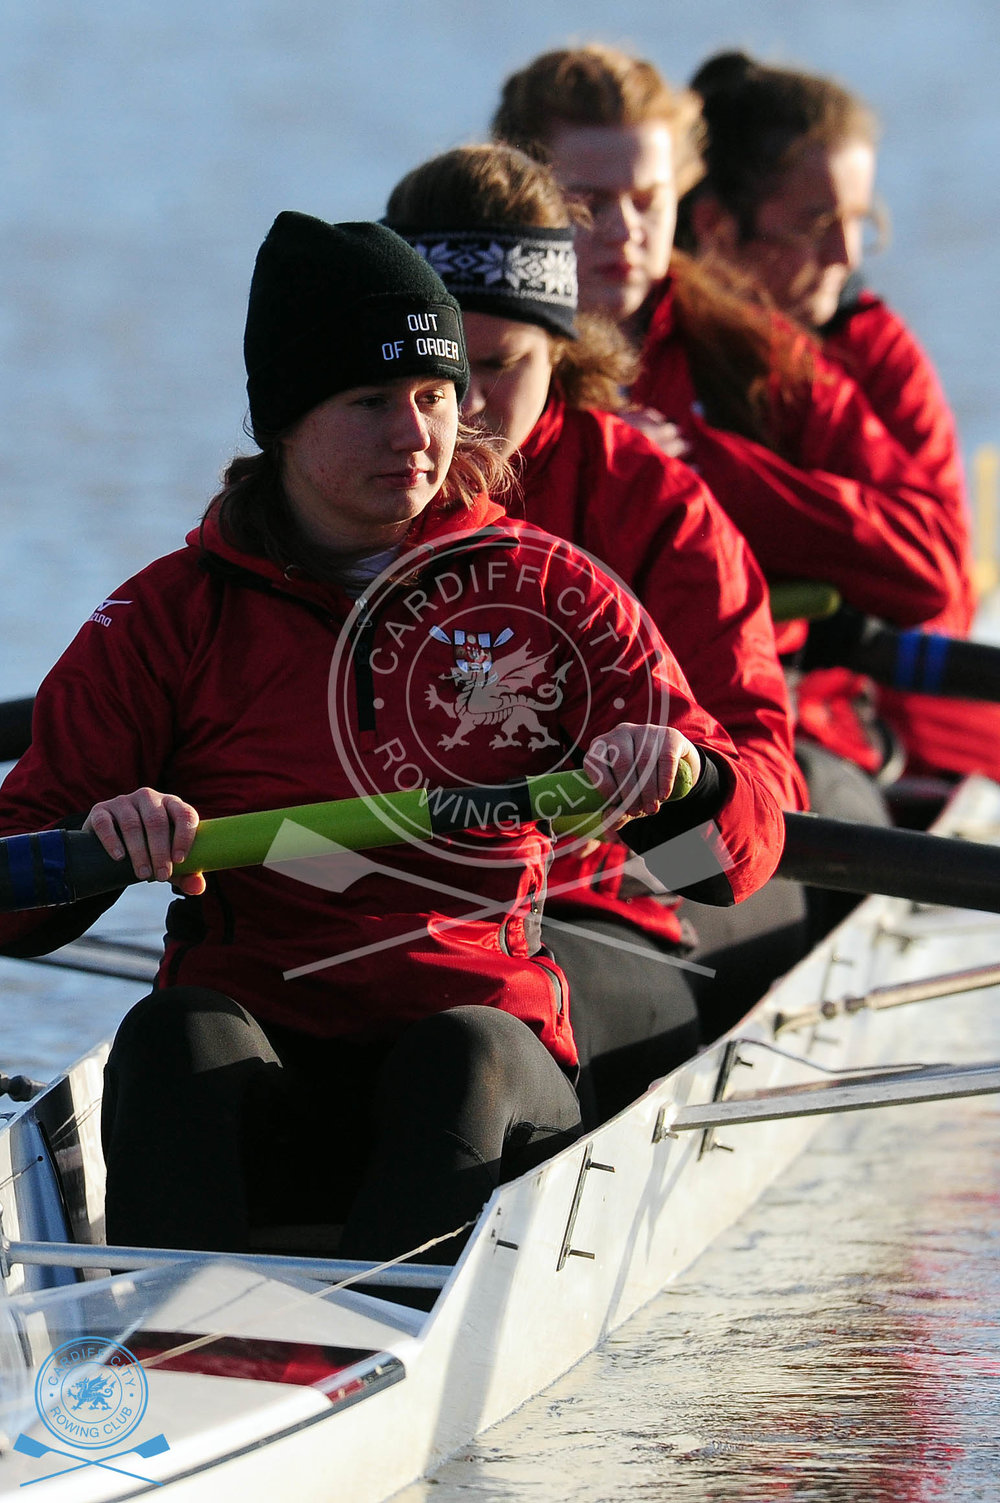 DW_280119_Cardiff_City_Rowing_10.jpg